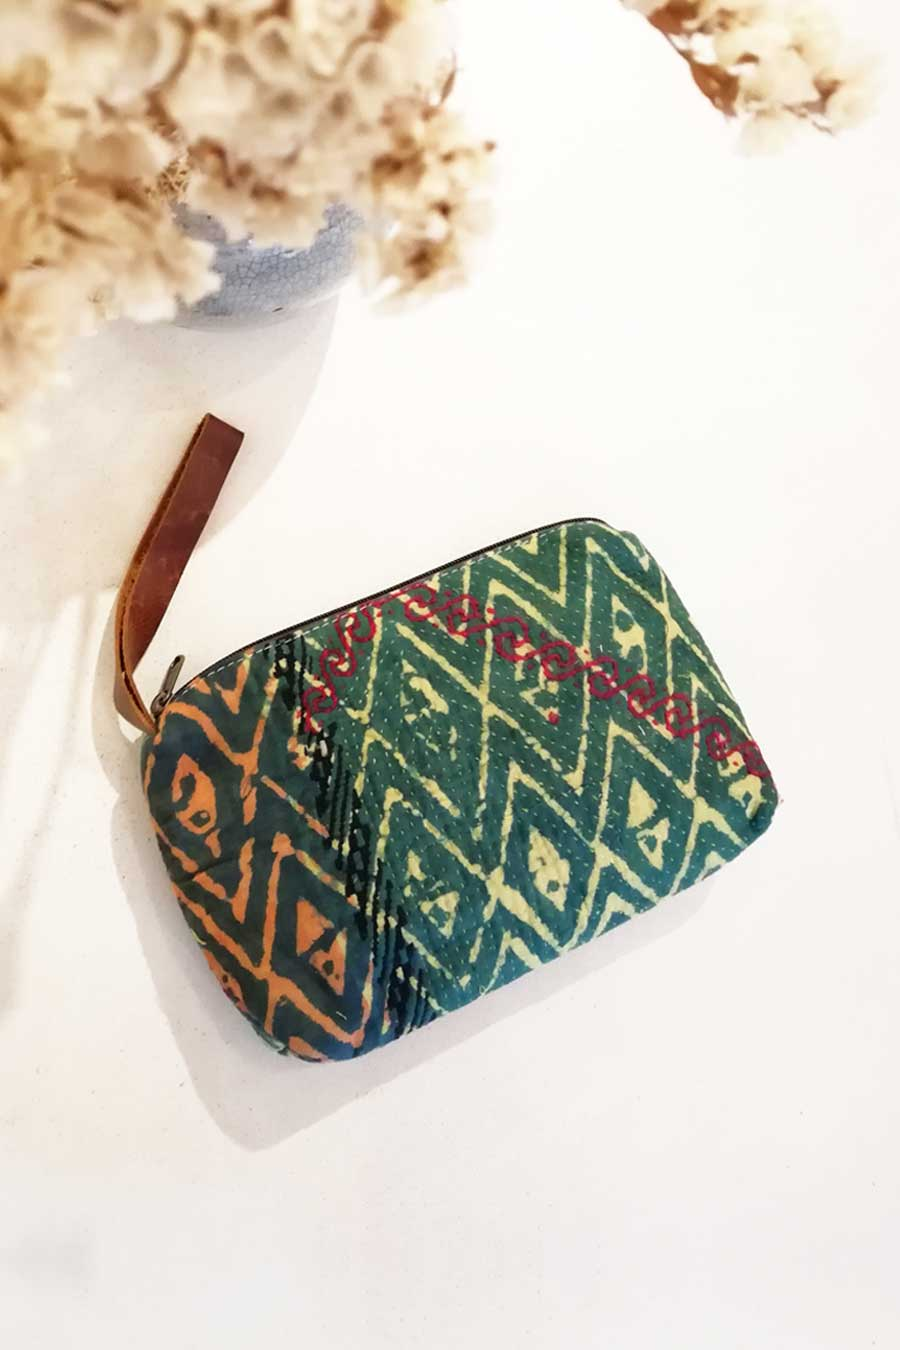 Boho Clutch  Bag from Vintage Fabric